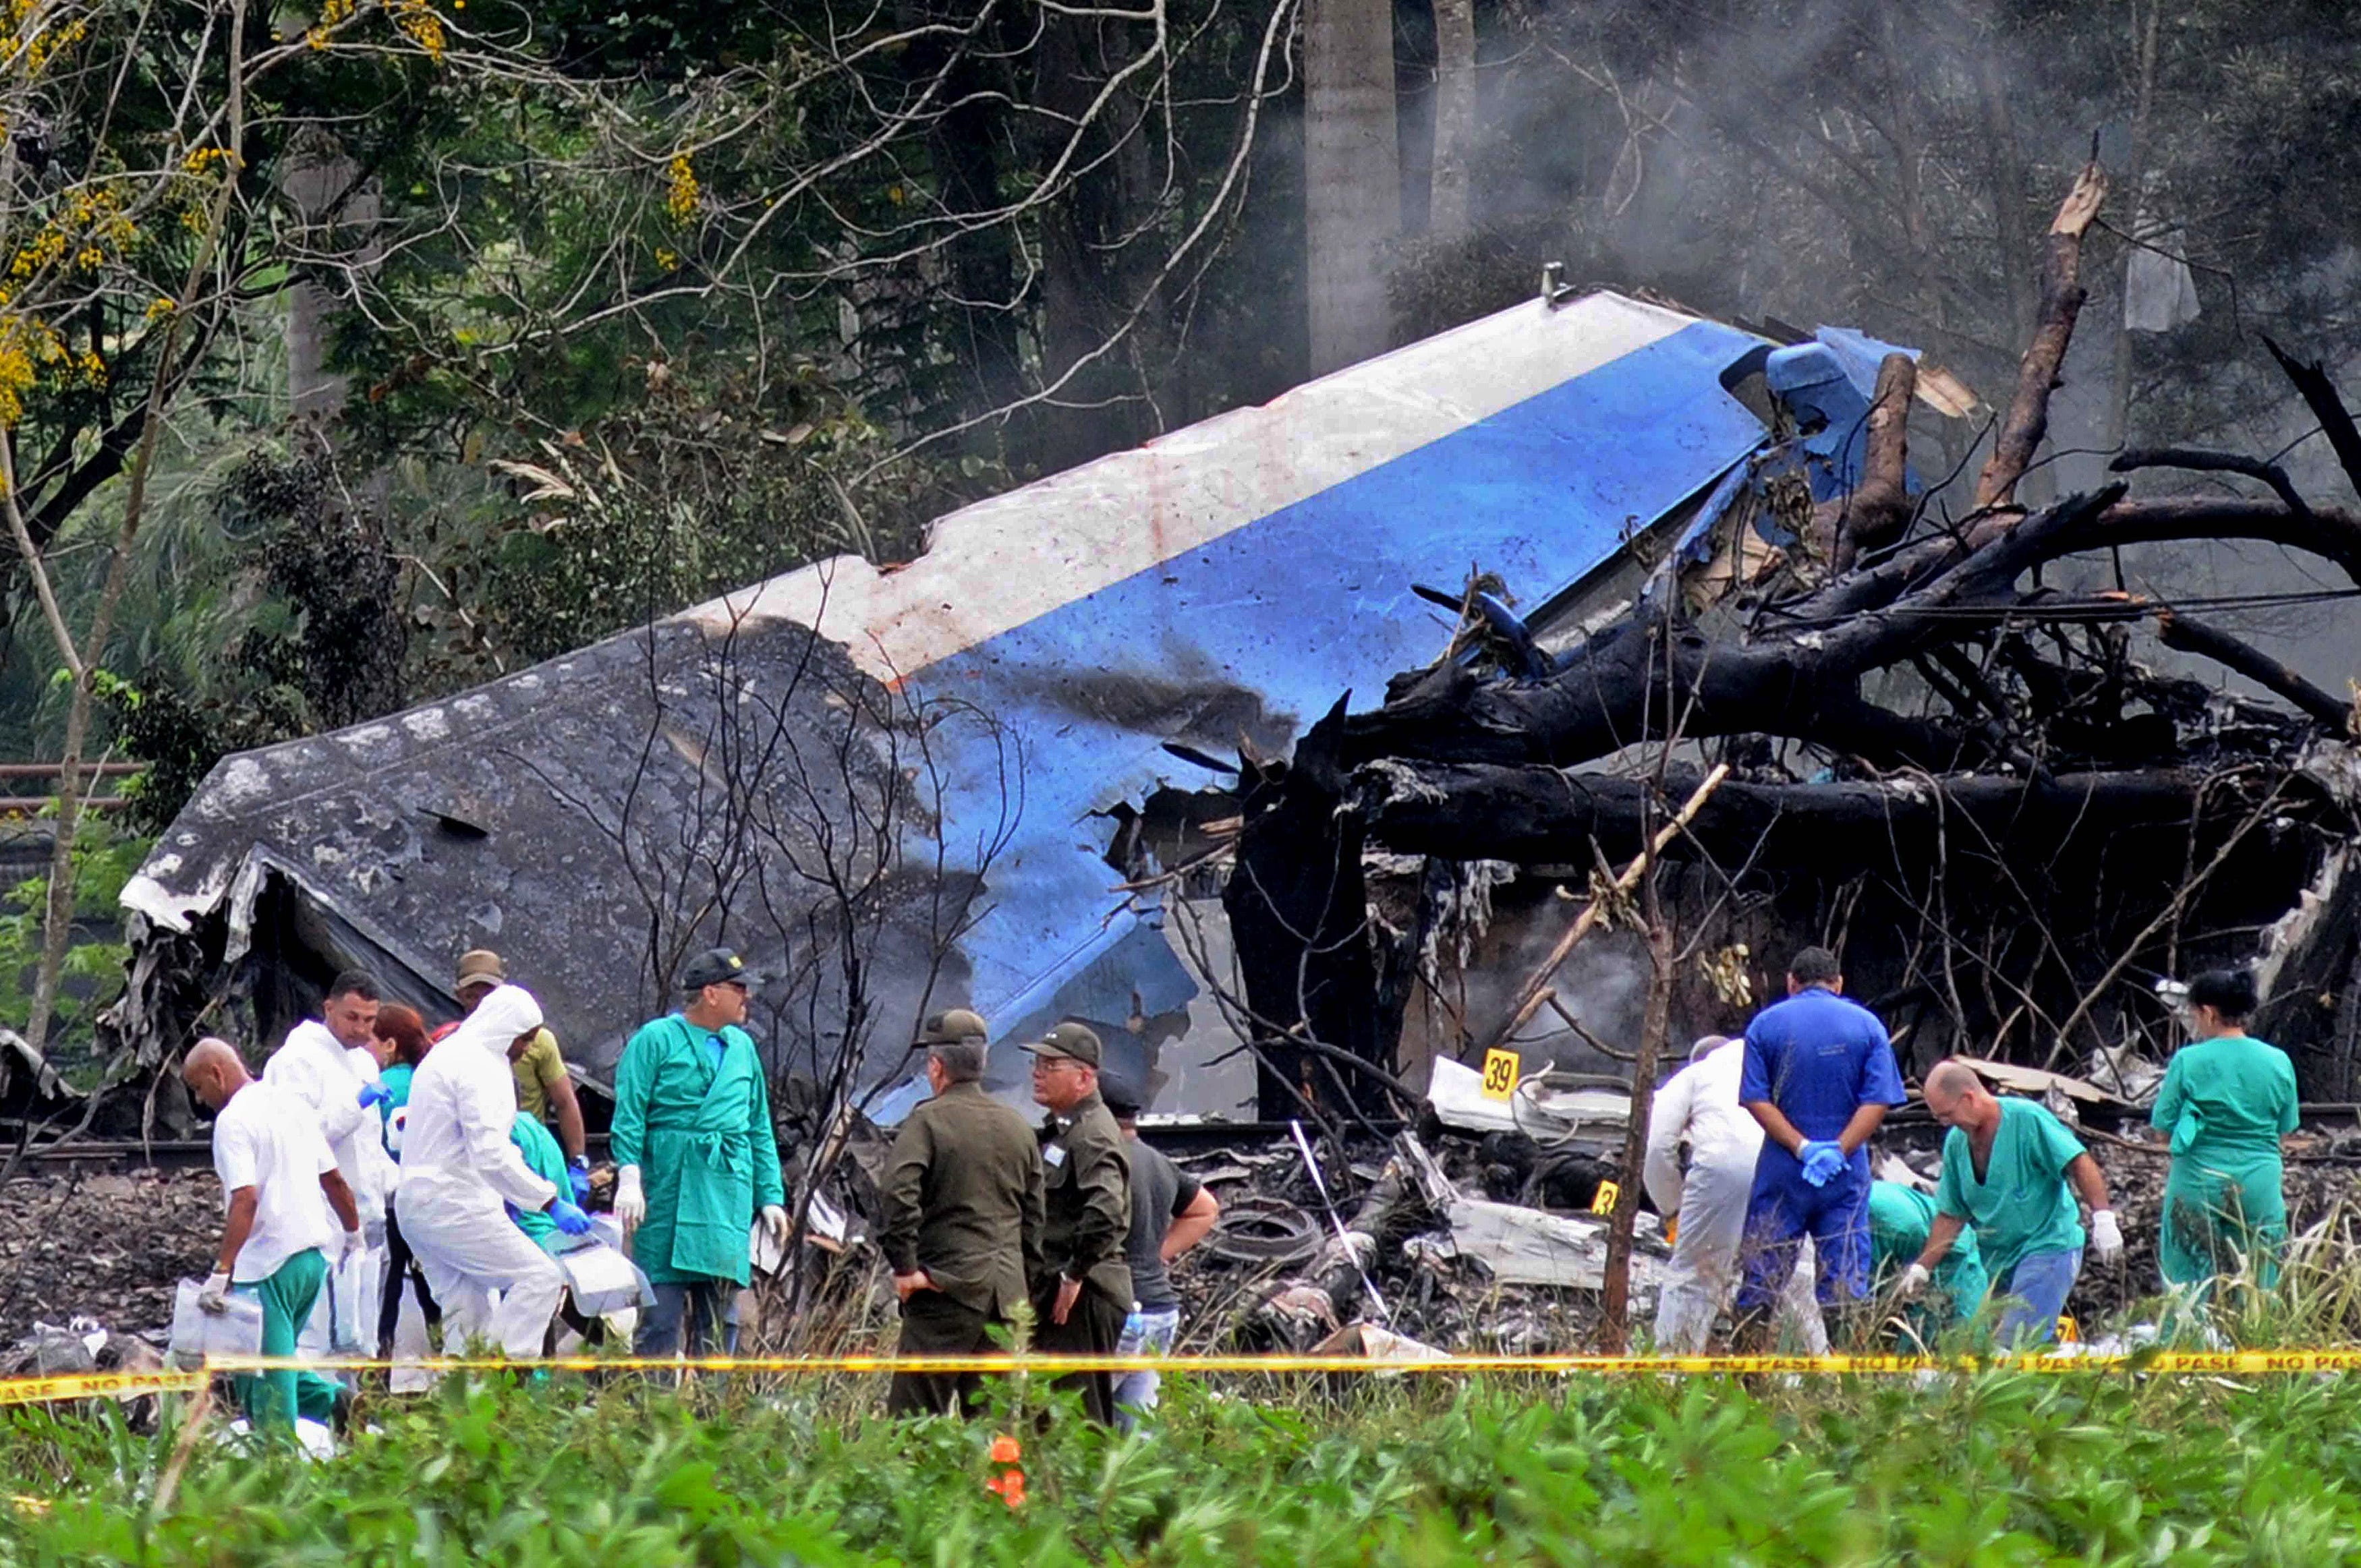 Cuba: 3 survivors in grave condition after airliner with 110 aboard crashes